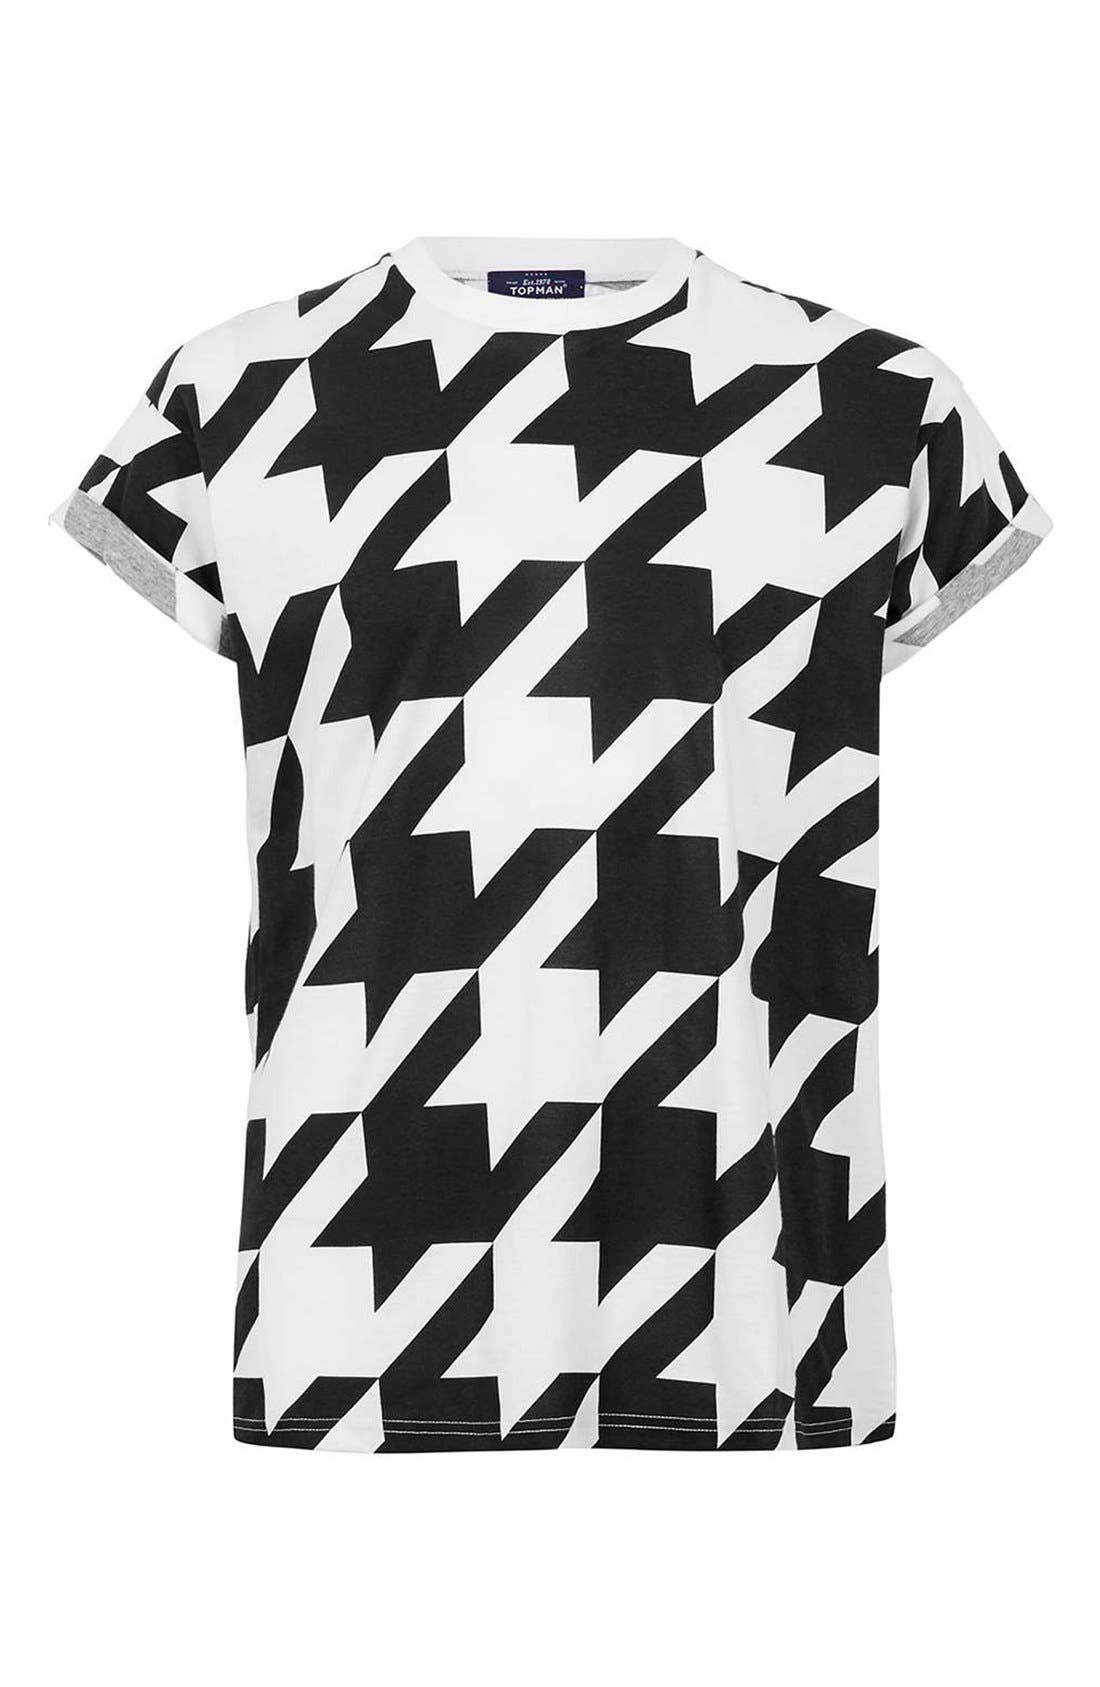 Alternate Image 1 Selected - Topman Houndstooth Print T-Shirt